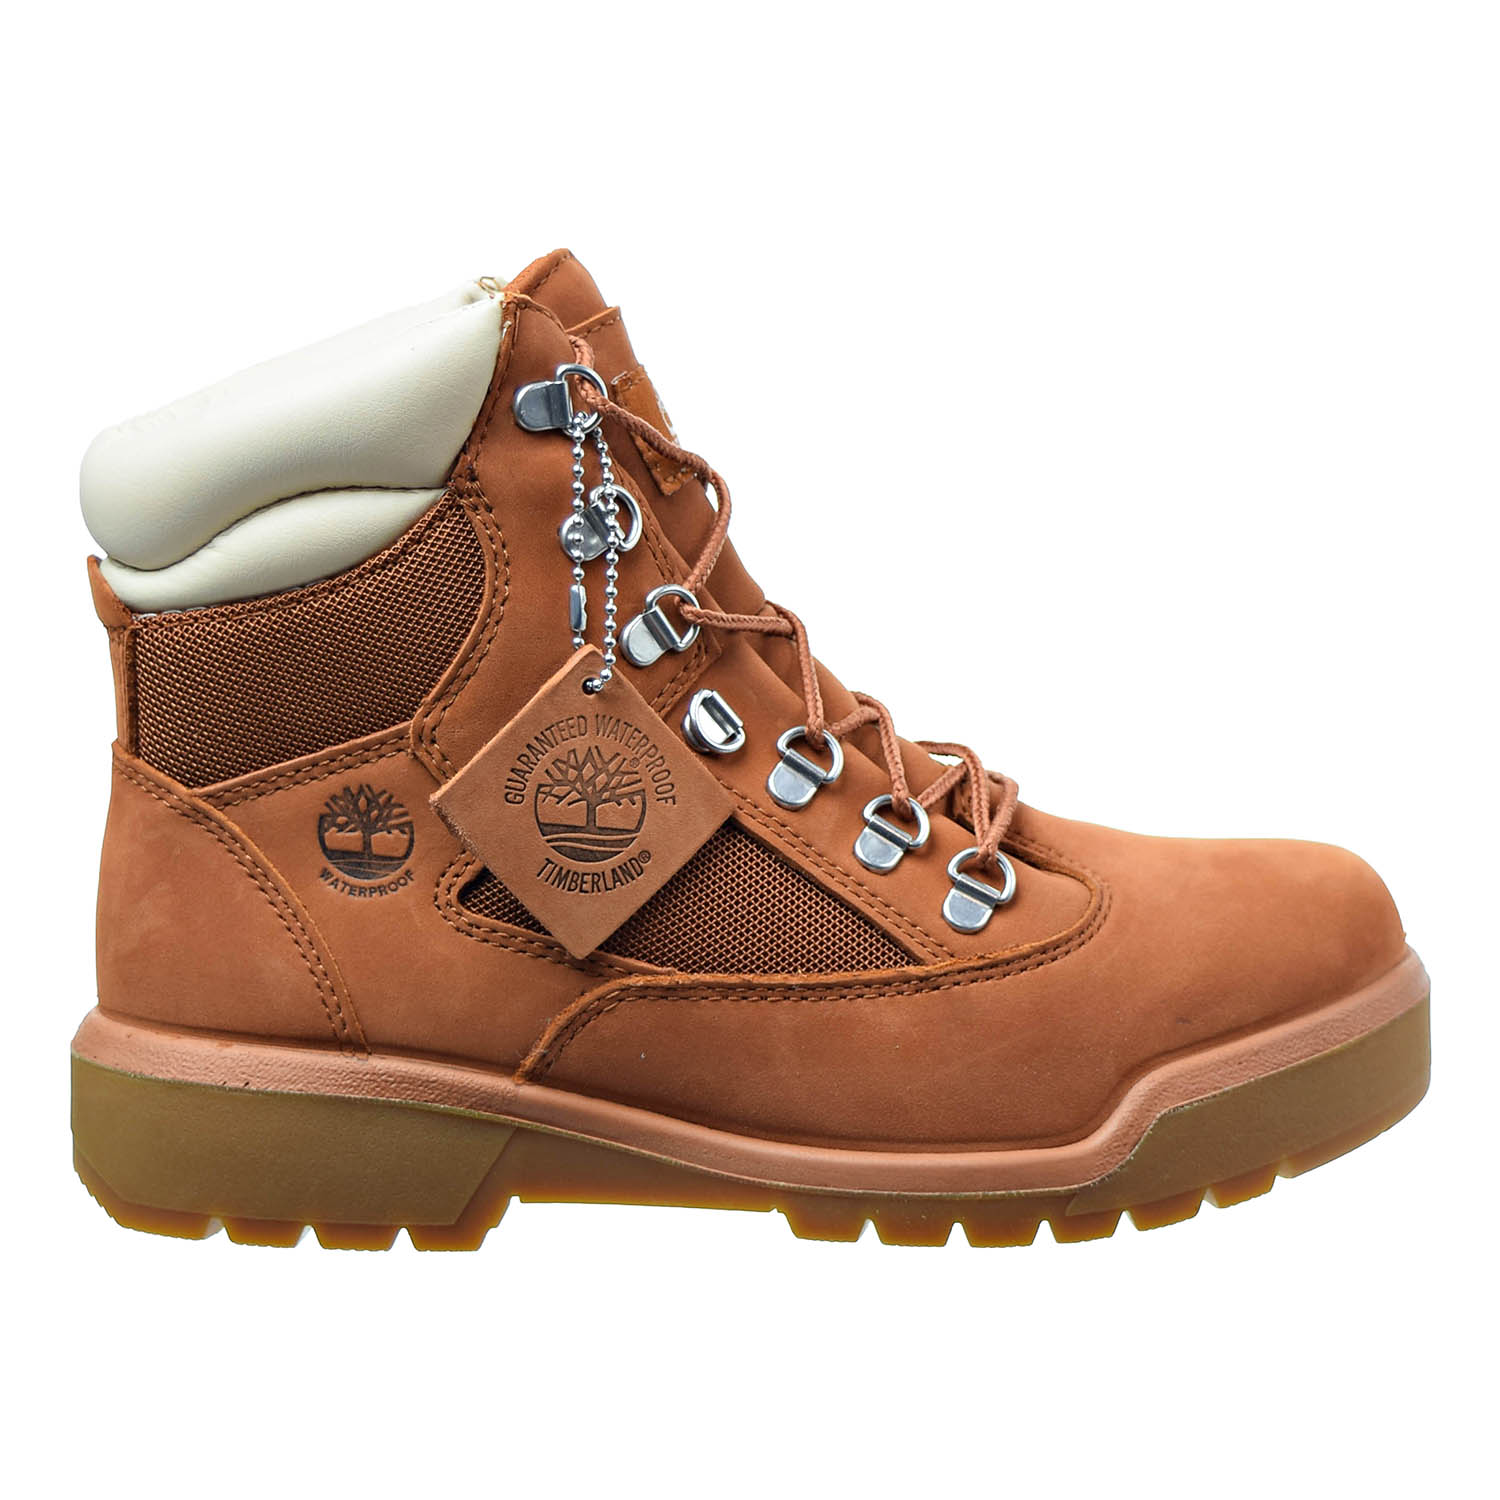 Timberland 6 Inch Men's Field Boots Dark Orange tb0a1nw4 by Timberland